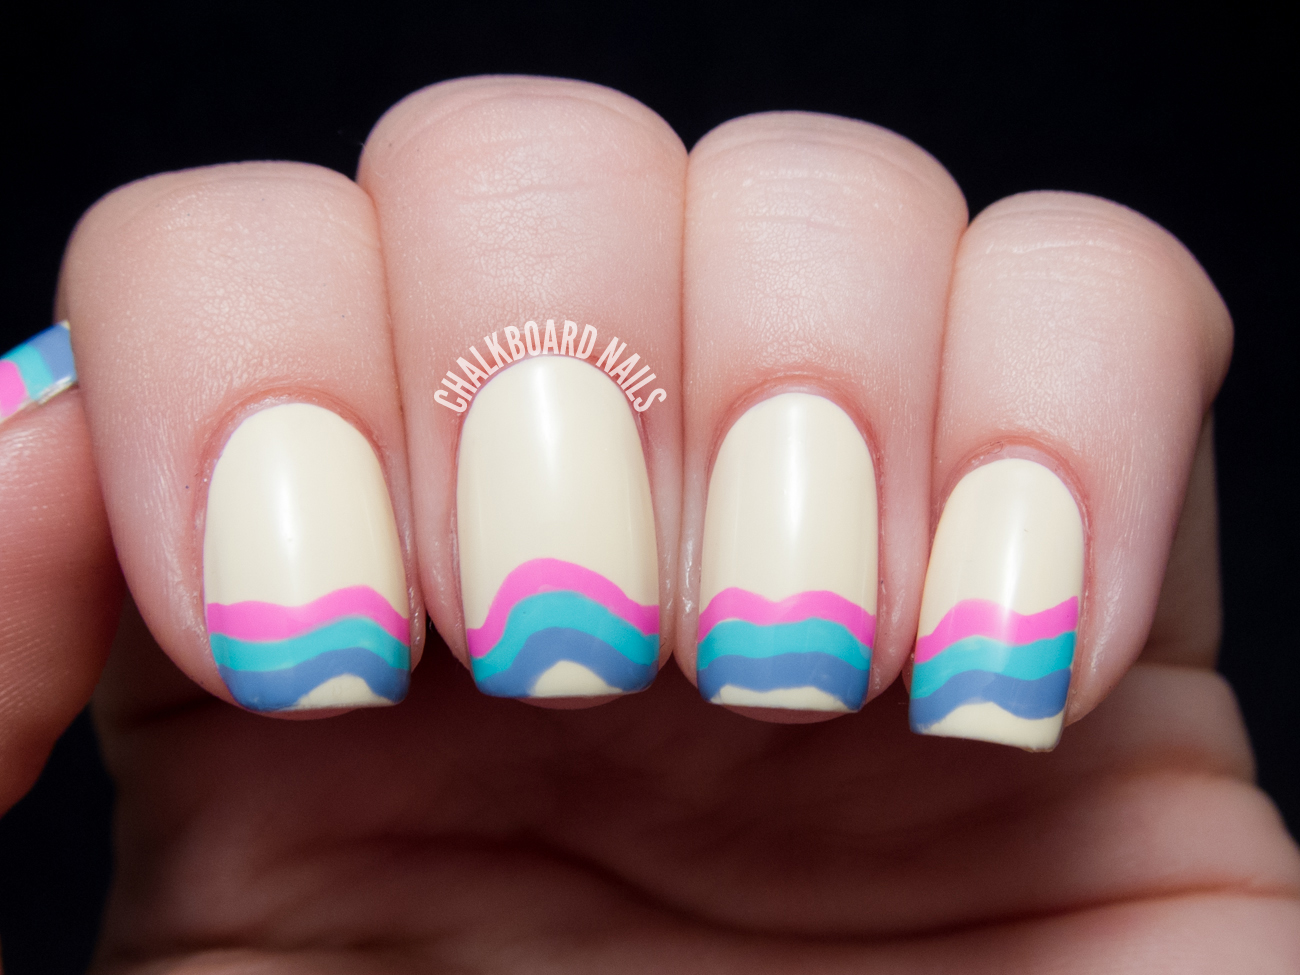 Wavelength French Manicure | Chalkboard Nails | Nail Art Blog